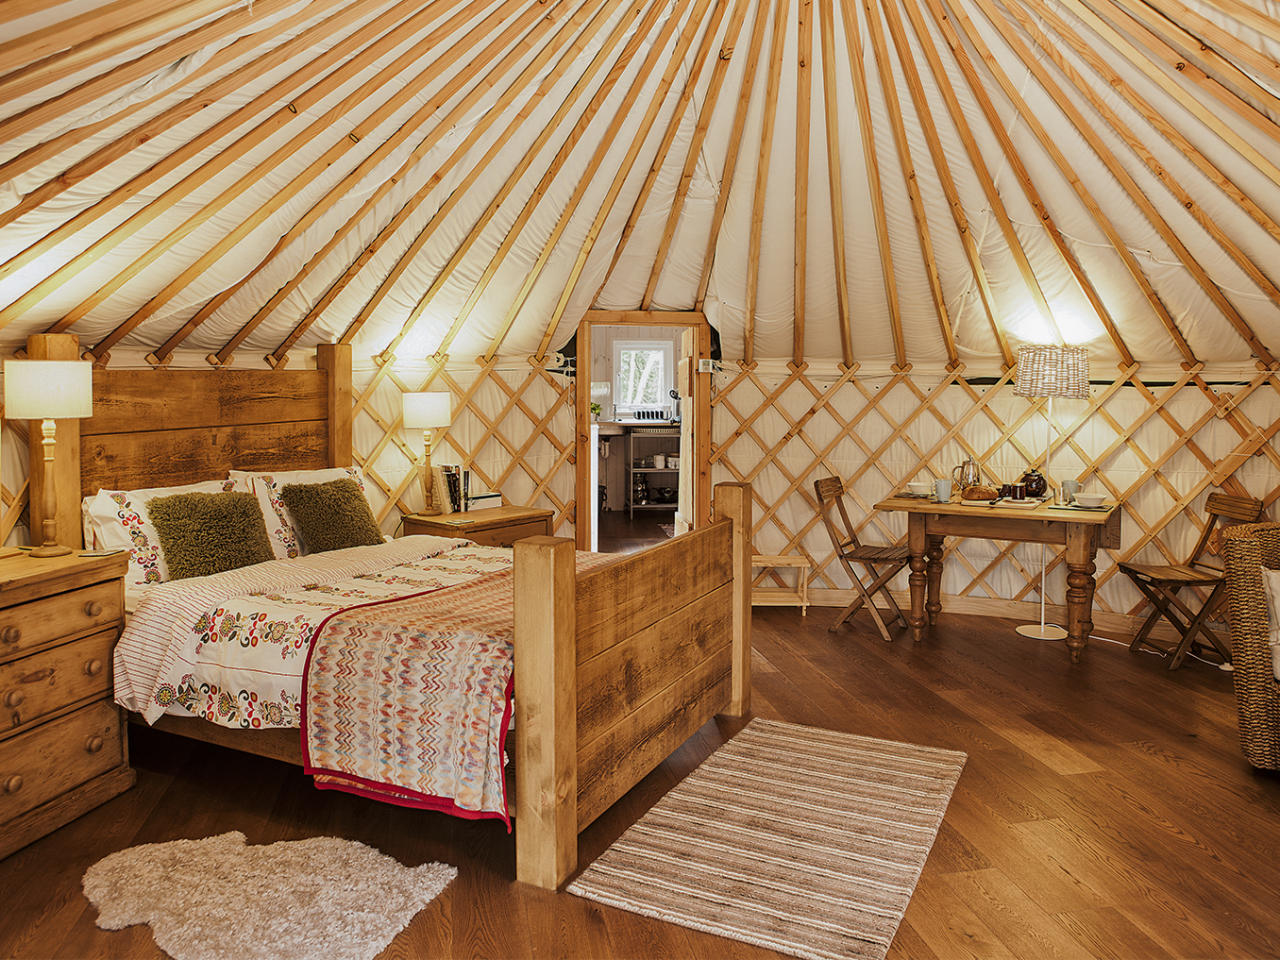 "<p><span>To switch off from daily stresses, book </span><a rel=""nofollow"" href=""http://www.sykescottages.co.uk/cottage/Peak-District-Peak-District-Derbyshire-Dales-Hepworth/The-Rowan-Yurt-917044.html""><span>this secluded yurt in Hepworth</span></a><span>, not far from the Peak District and Yorkshire Dales. Inside there's no wi-fi, TV or phone, but there are oodles of homely and romantic features such as a wood-burning stove and private hot tub. There's a lovely pub nearby and walks start straight from your doorstep. Three nights from £383. [Photo: Skyes Cottages]</span> </p>"